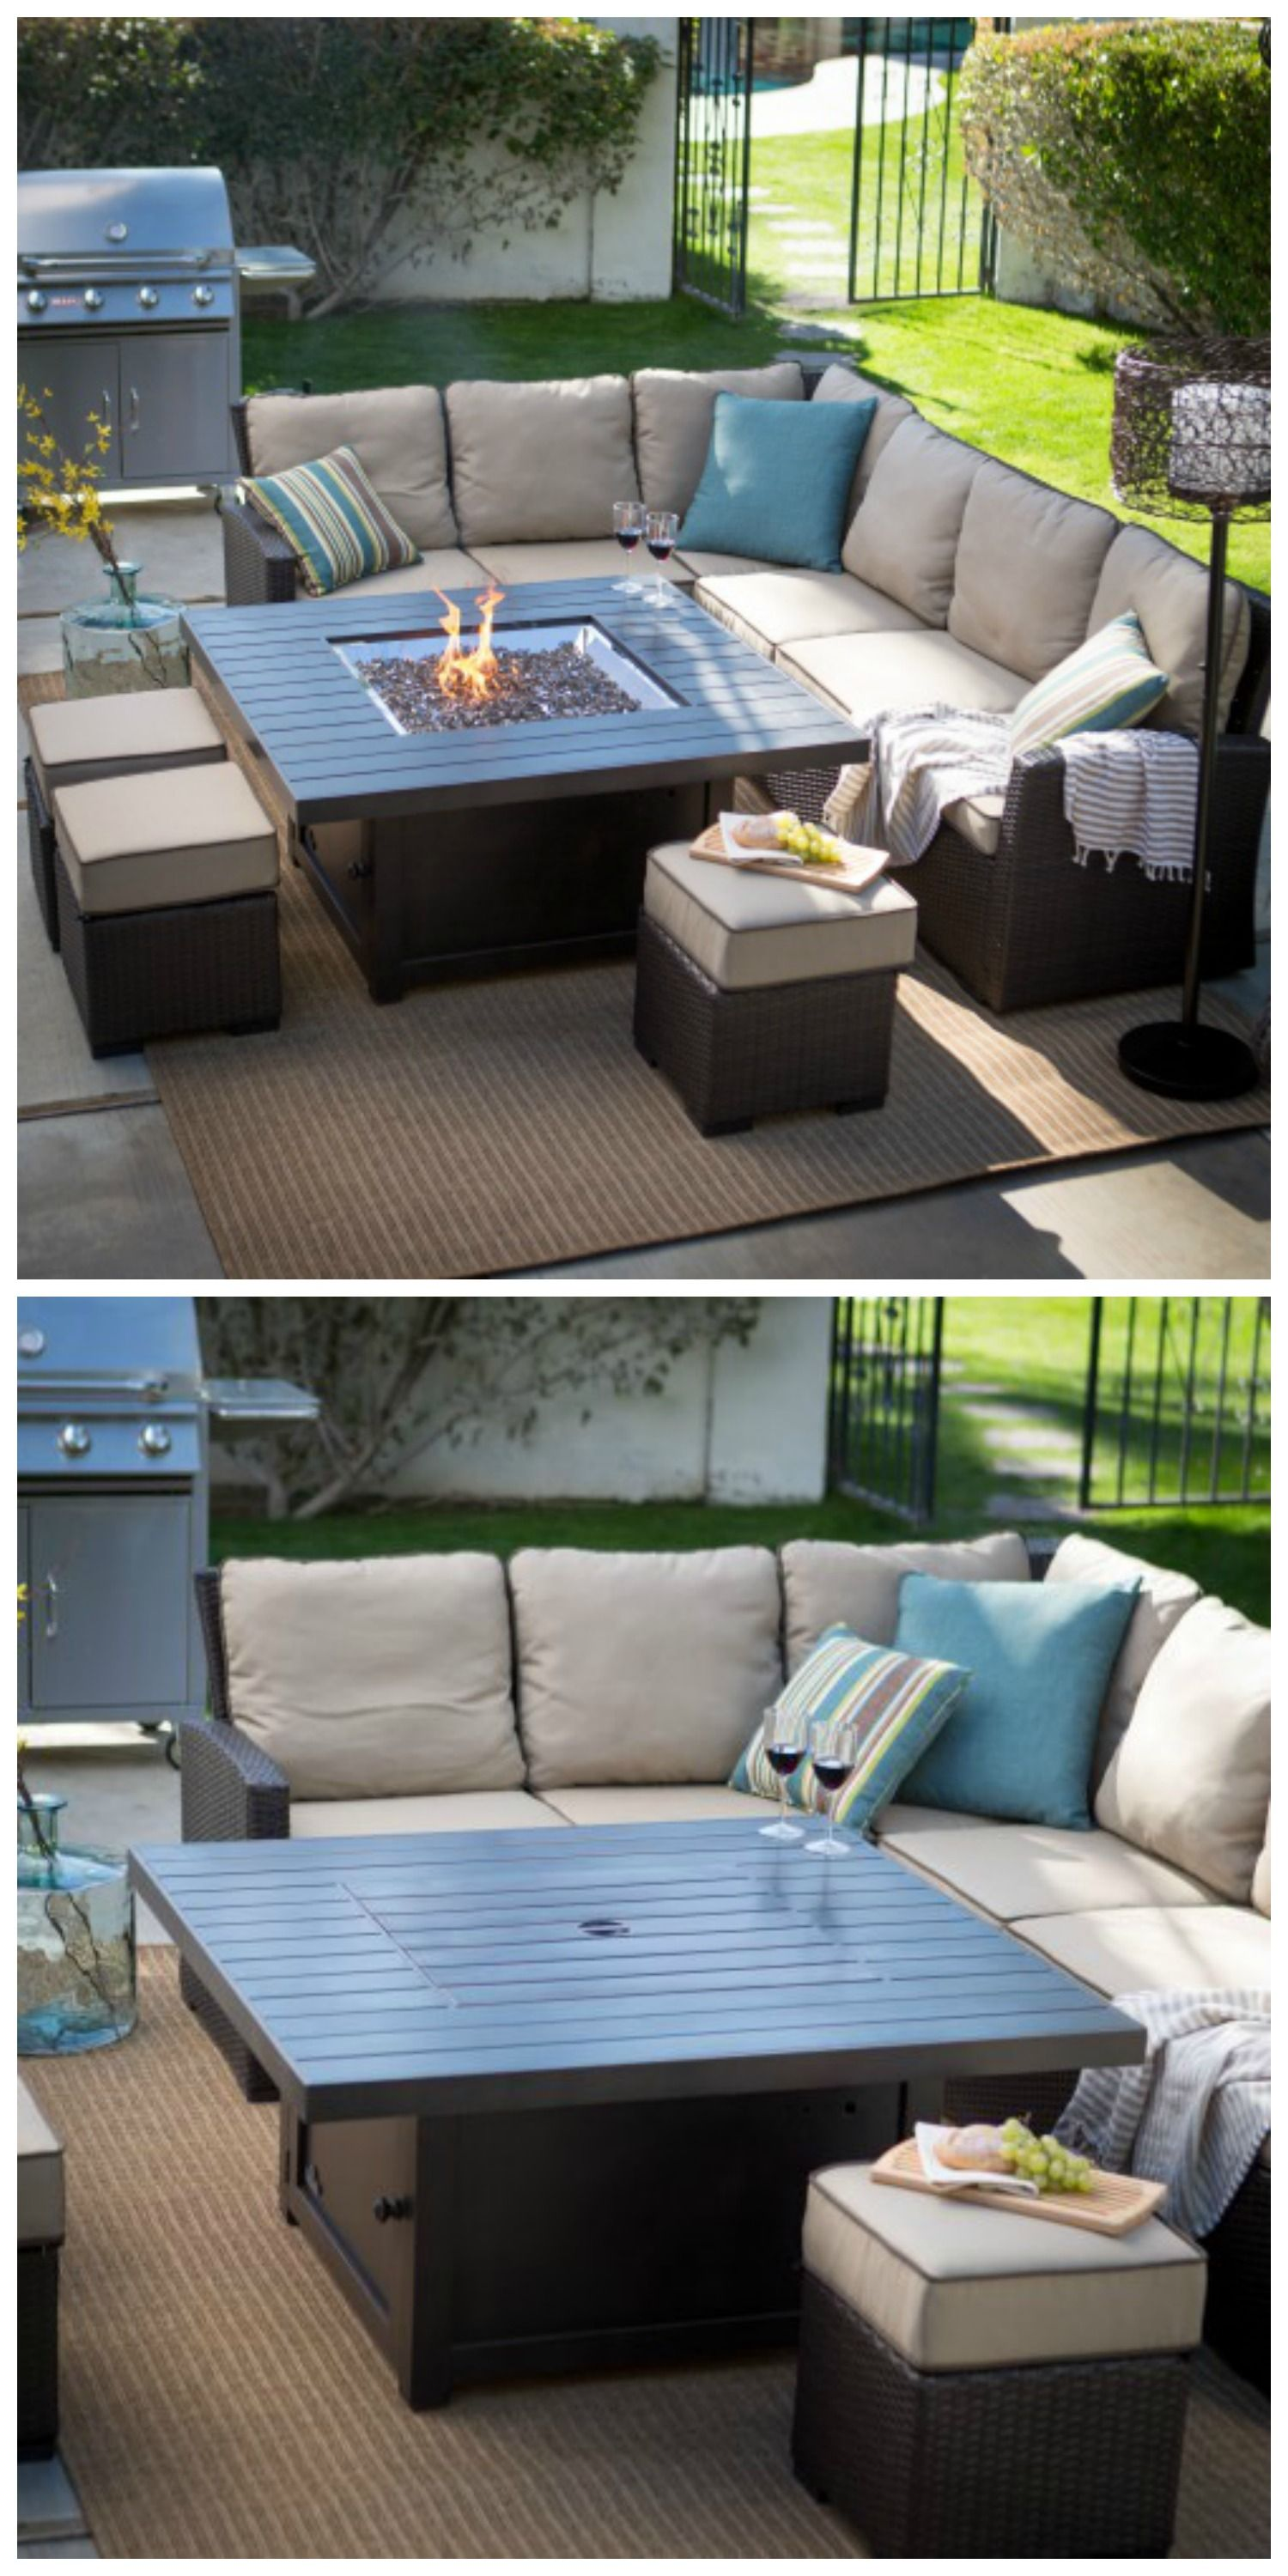 best images about outdoor patio furniture check it out patiofurniture outdoor patio furniture with fire pit38 patio